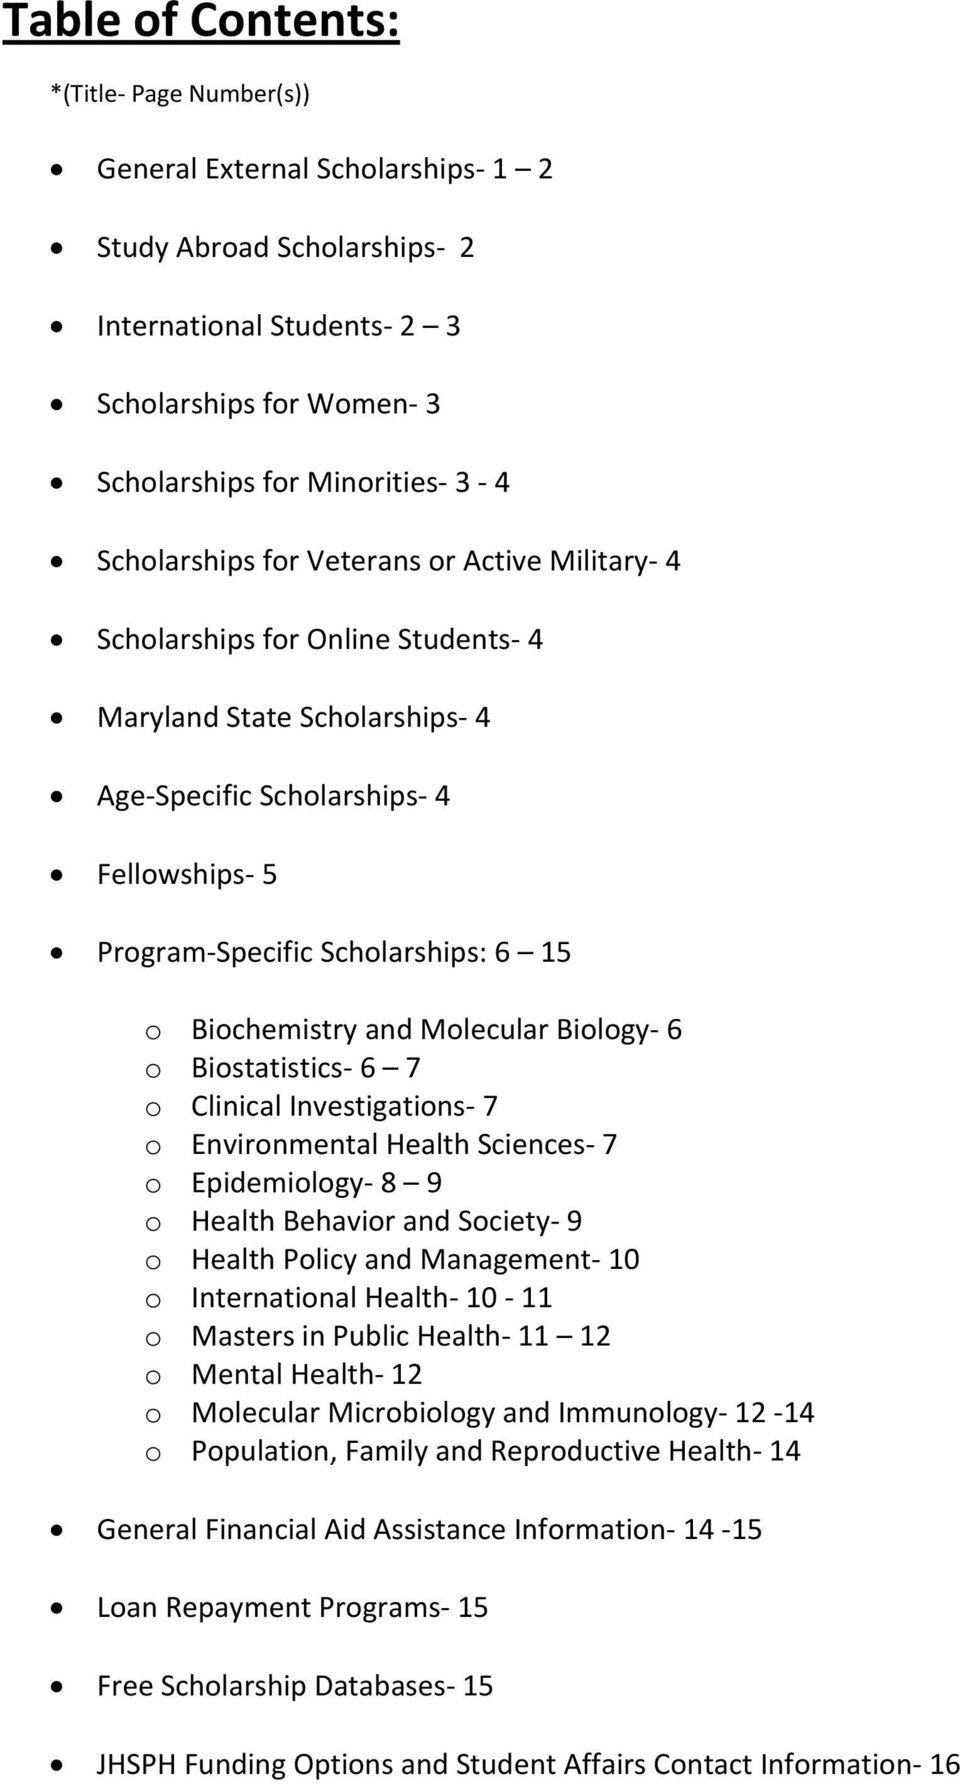 Biochemistry and Molecular Biology 6 o Biostatistics 6 7 o Clinical Investigations 7 o Environmental Health Sciences 7 o Epidemiology 8 9 o Health Behavior and Society 9 o Health Policy and